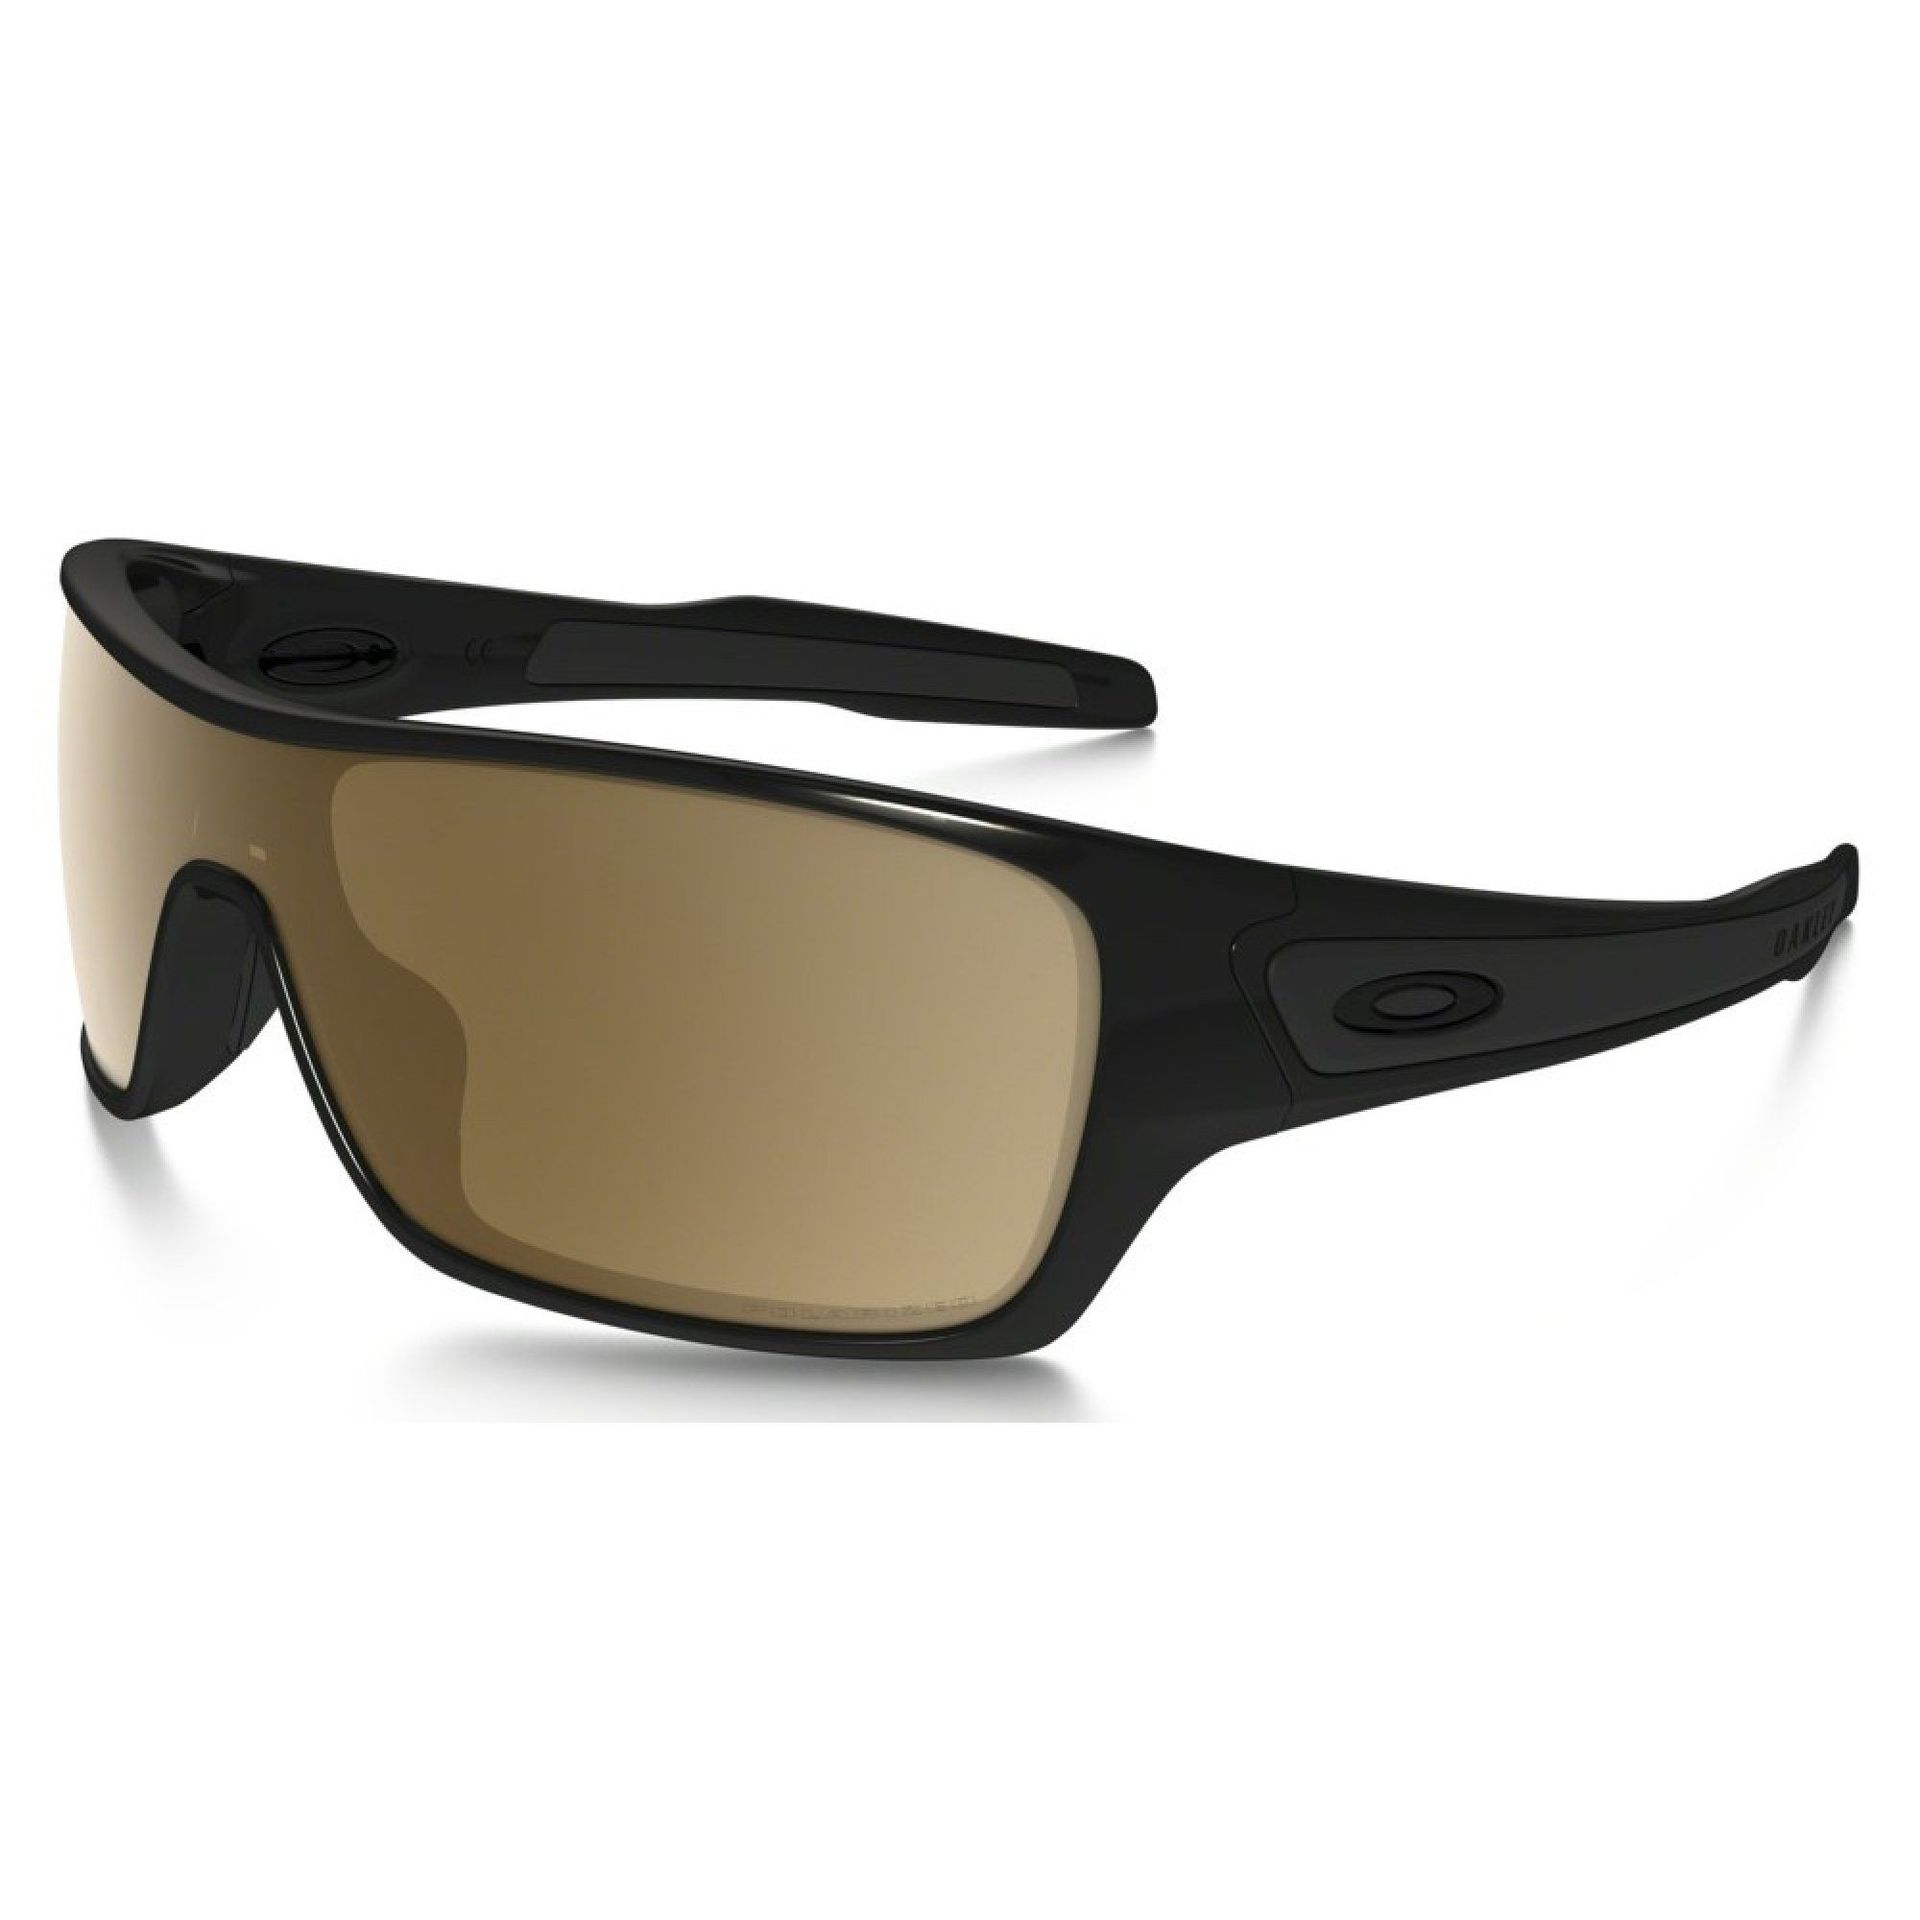 OKULARY OAKLEY TURBINE ROTOR POLARIZED TUNGSTEN IRIDIUM I